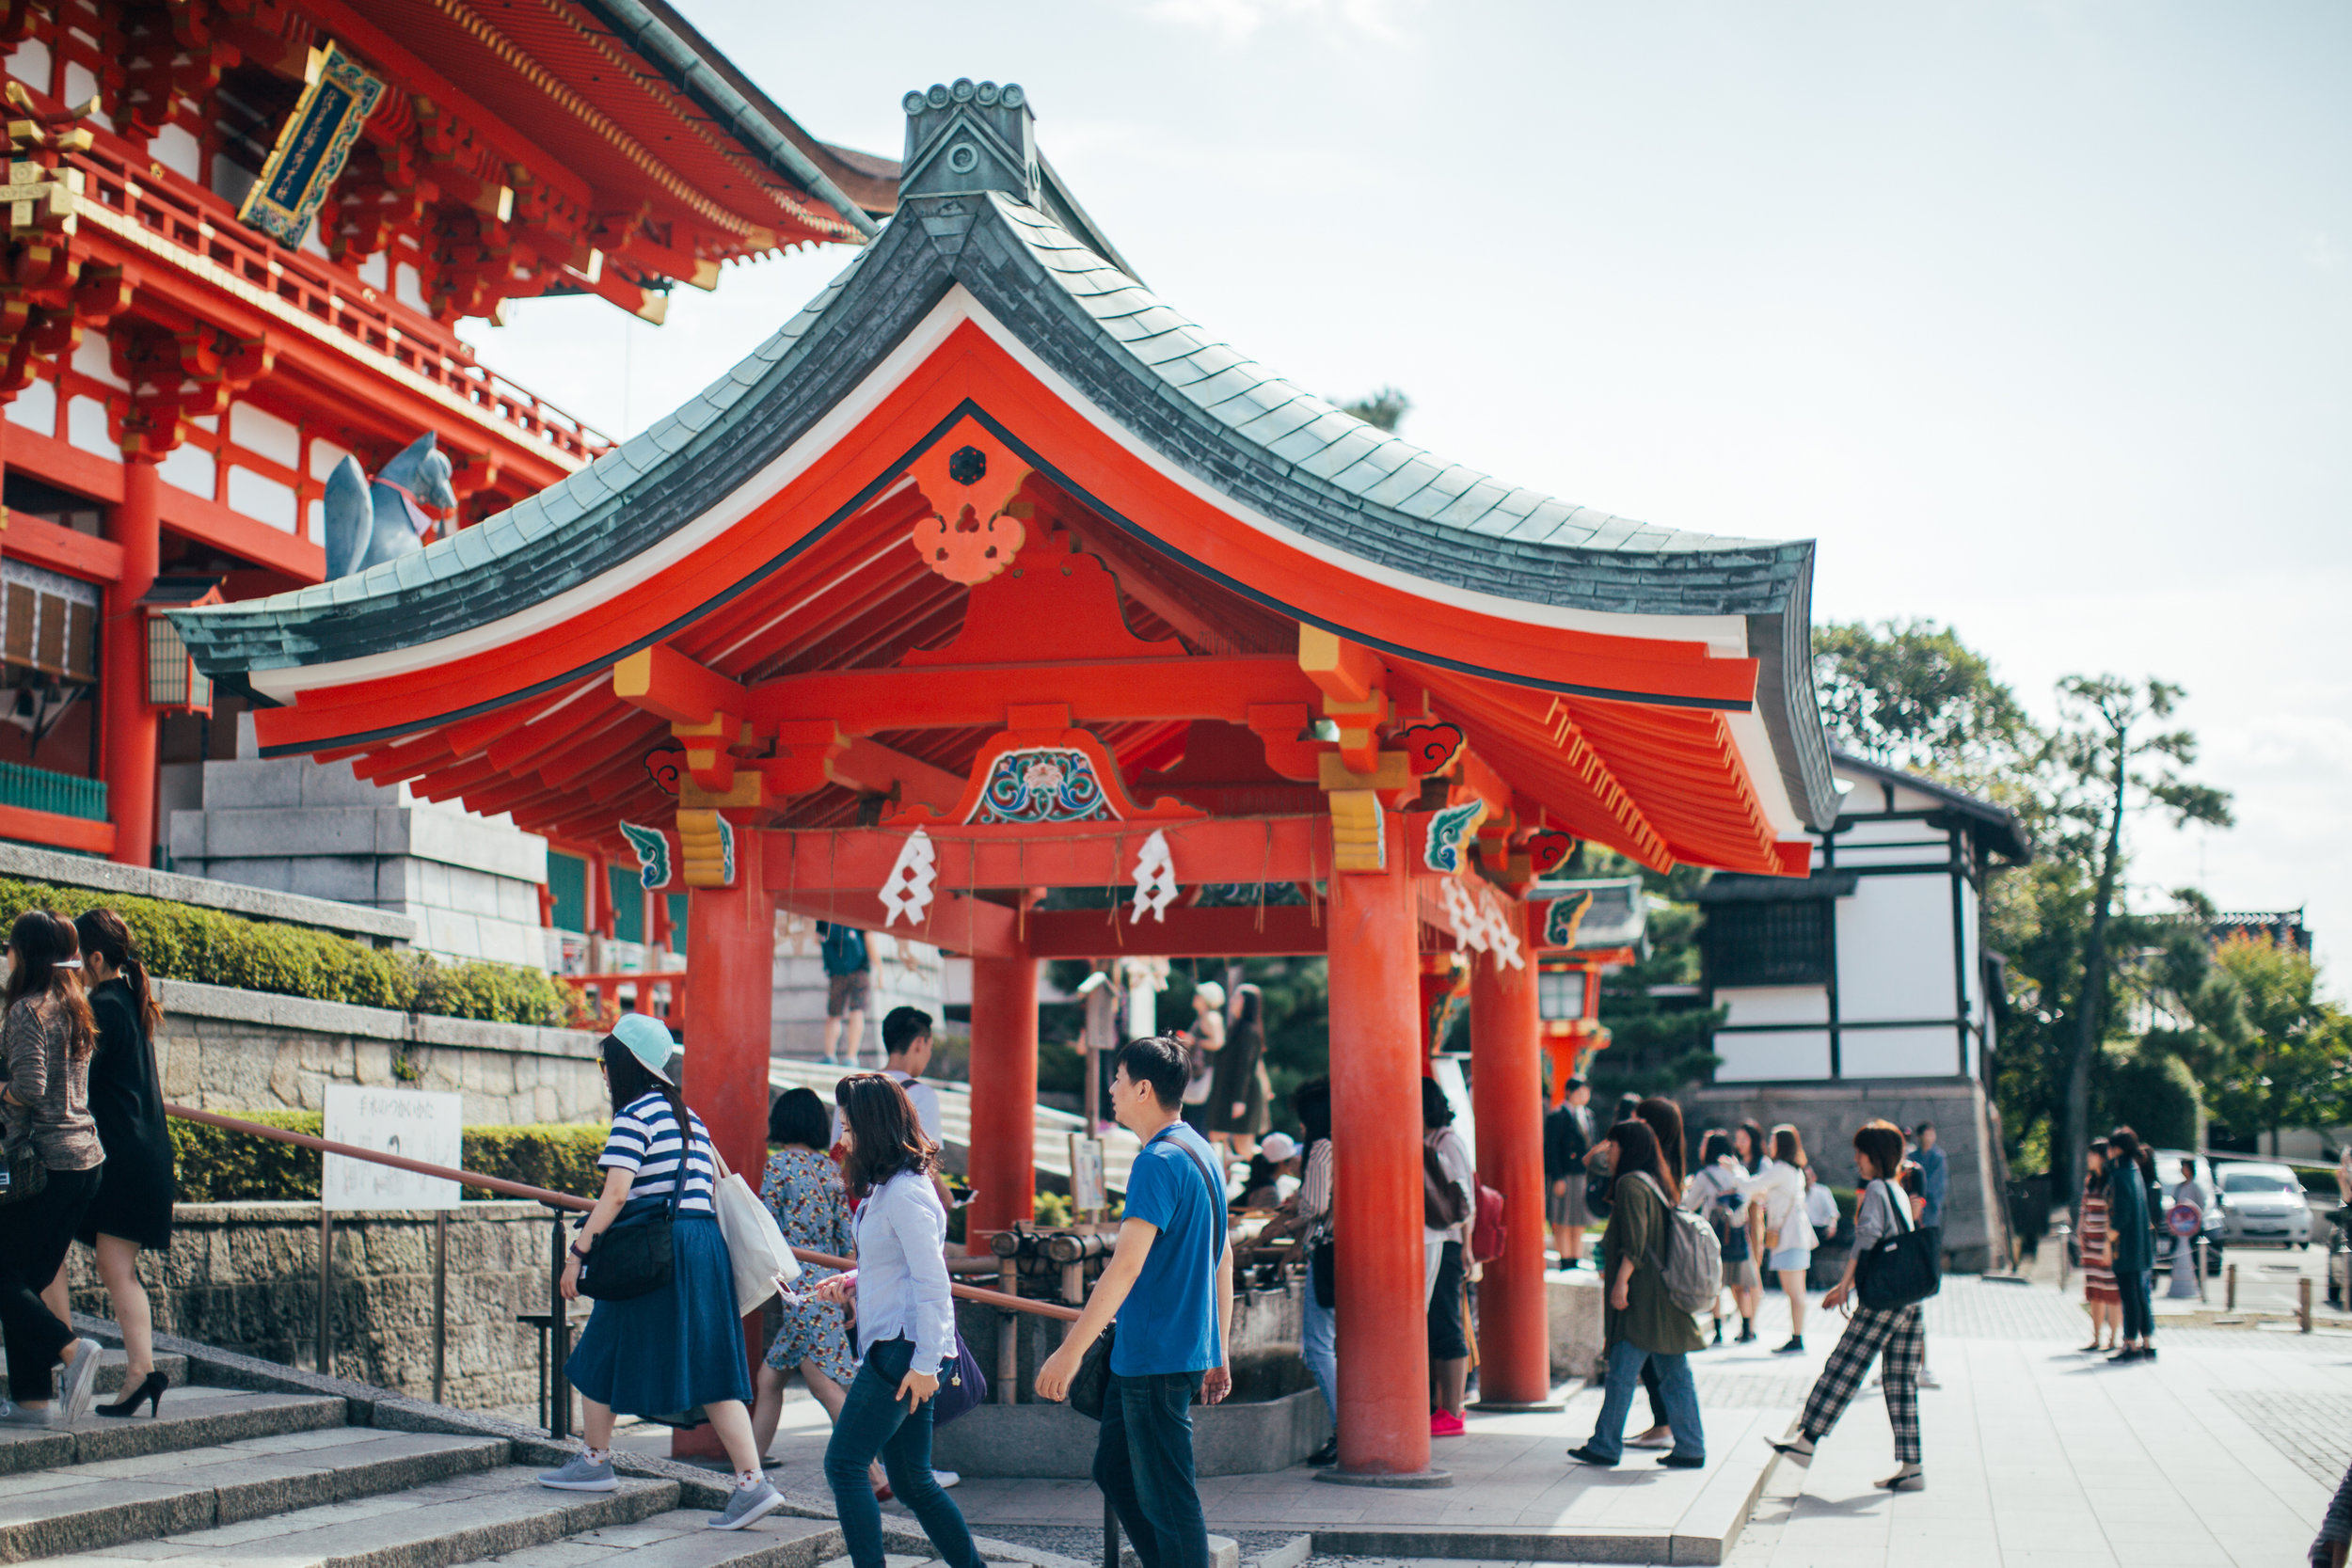 At the entrance of a very crowded shrine.